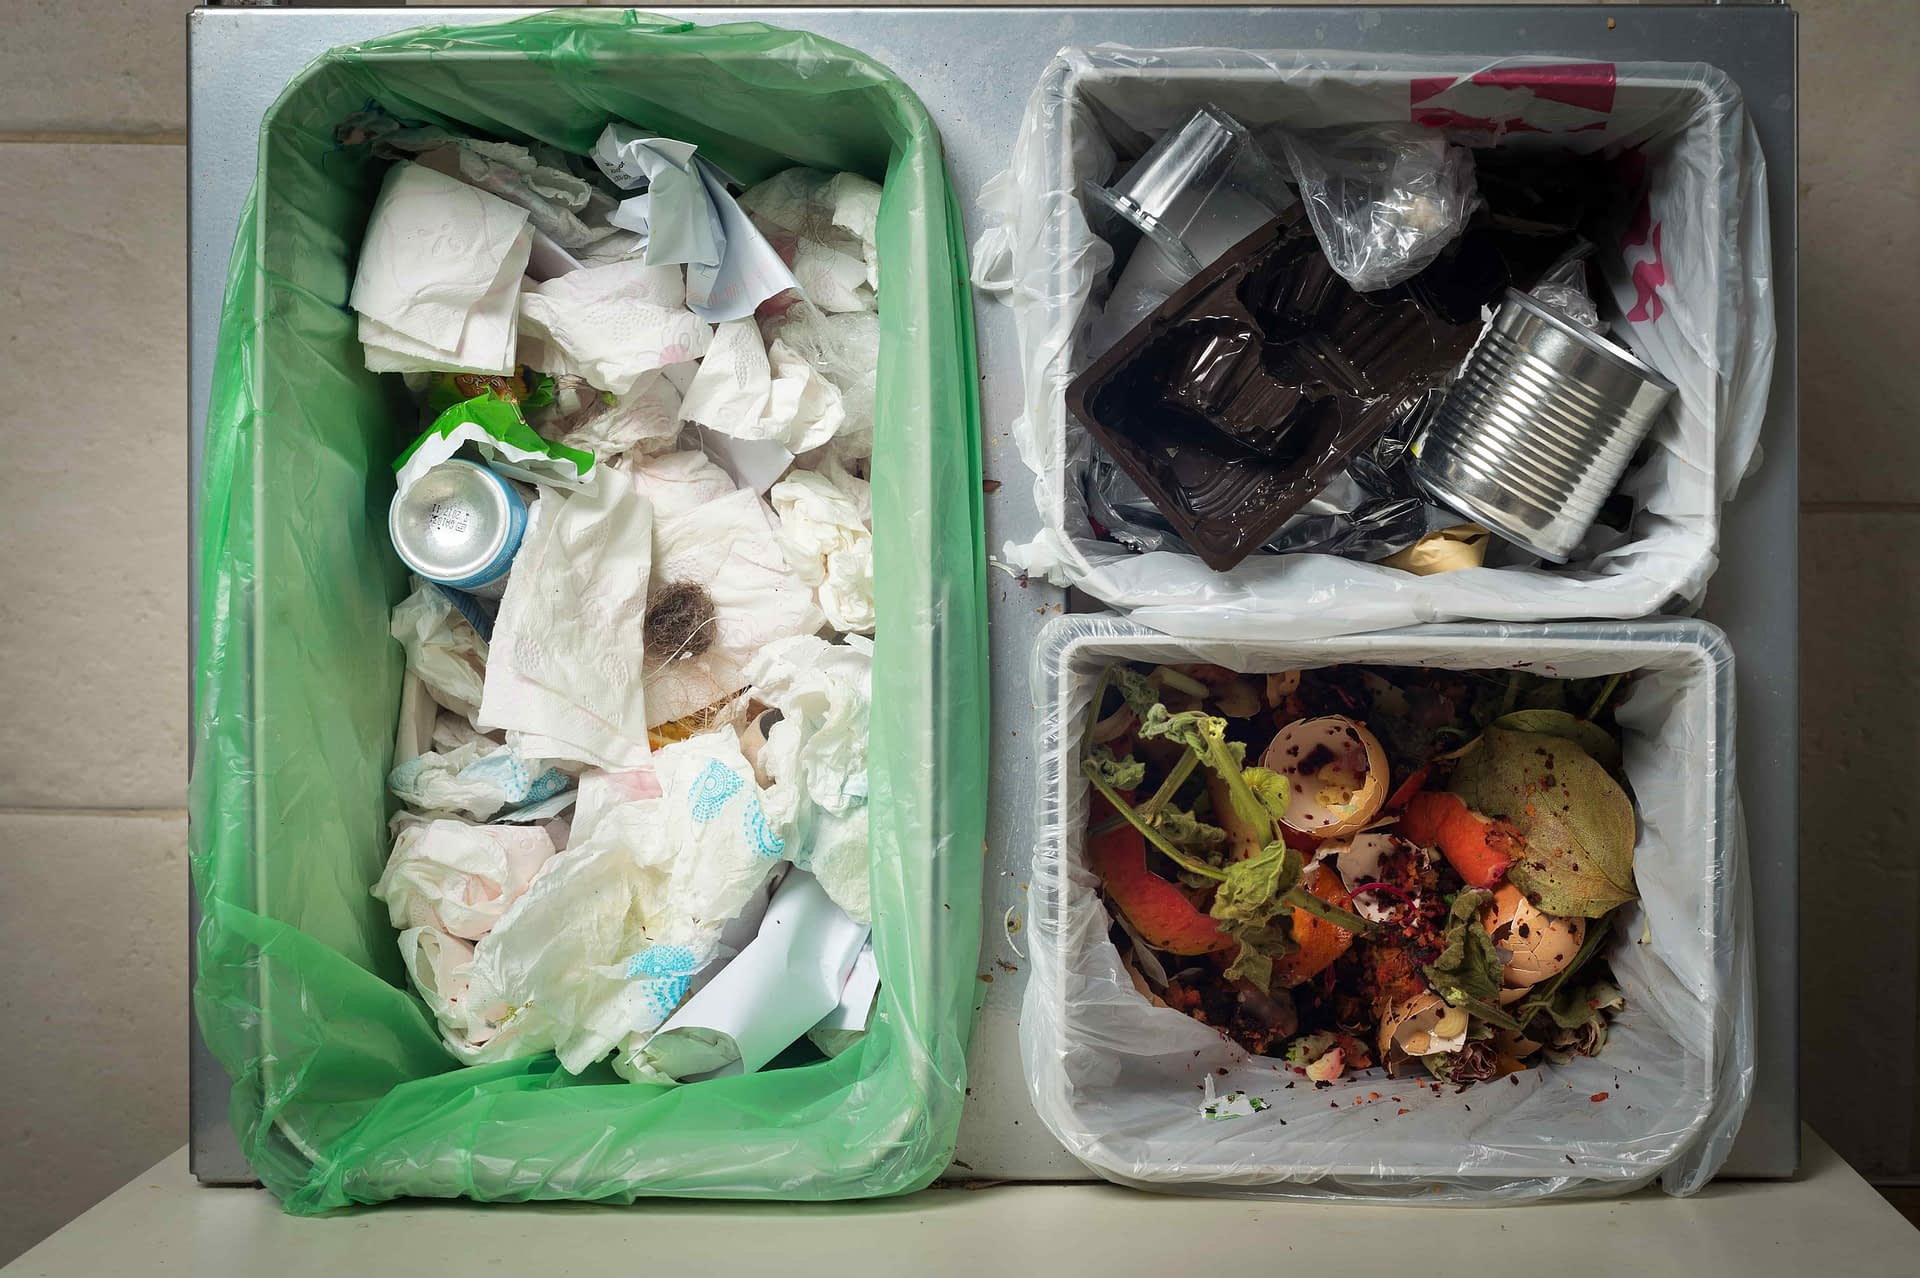 Recommendations included reducing the wastage of food and improving and optimizing waste separation practices.